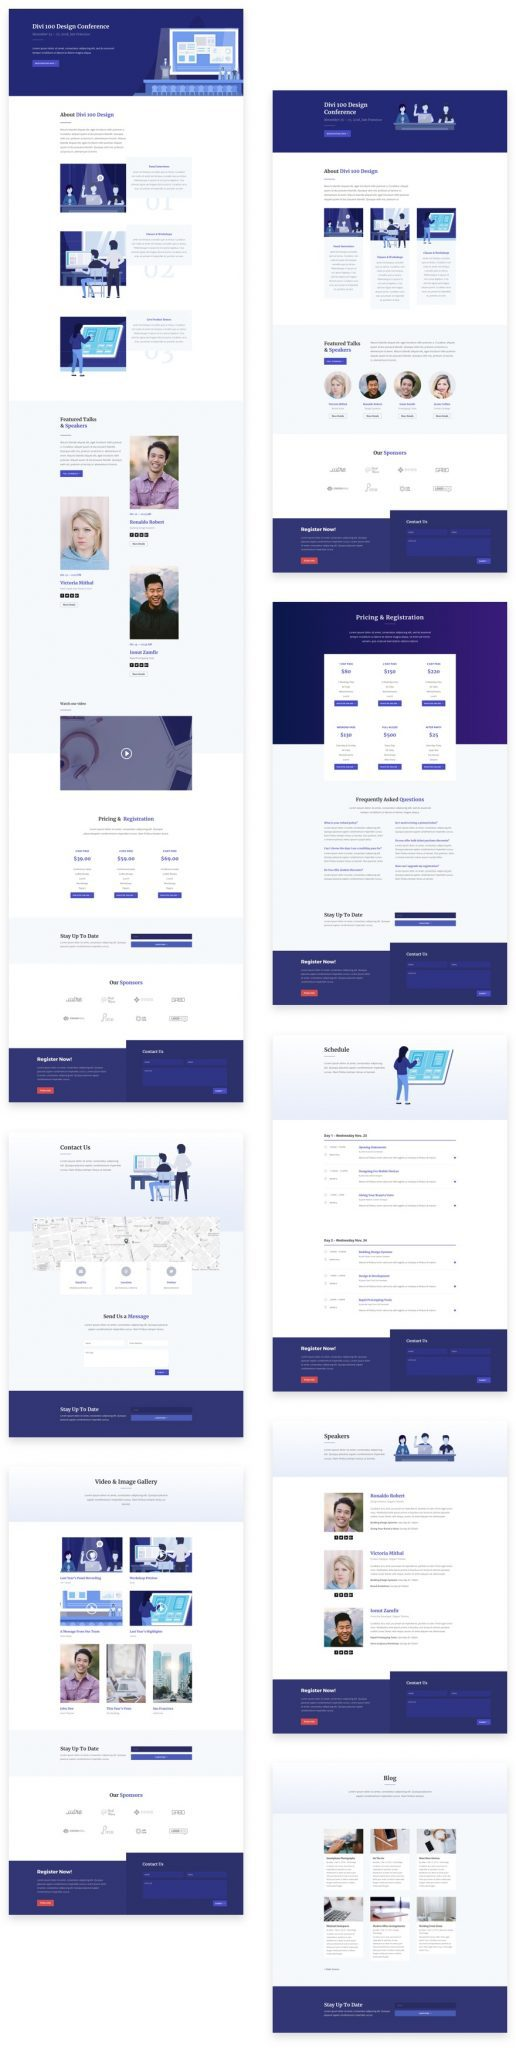 Design Conference Divi Layout Pack